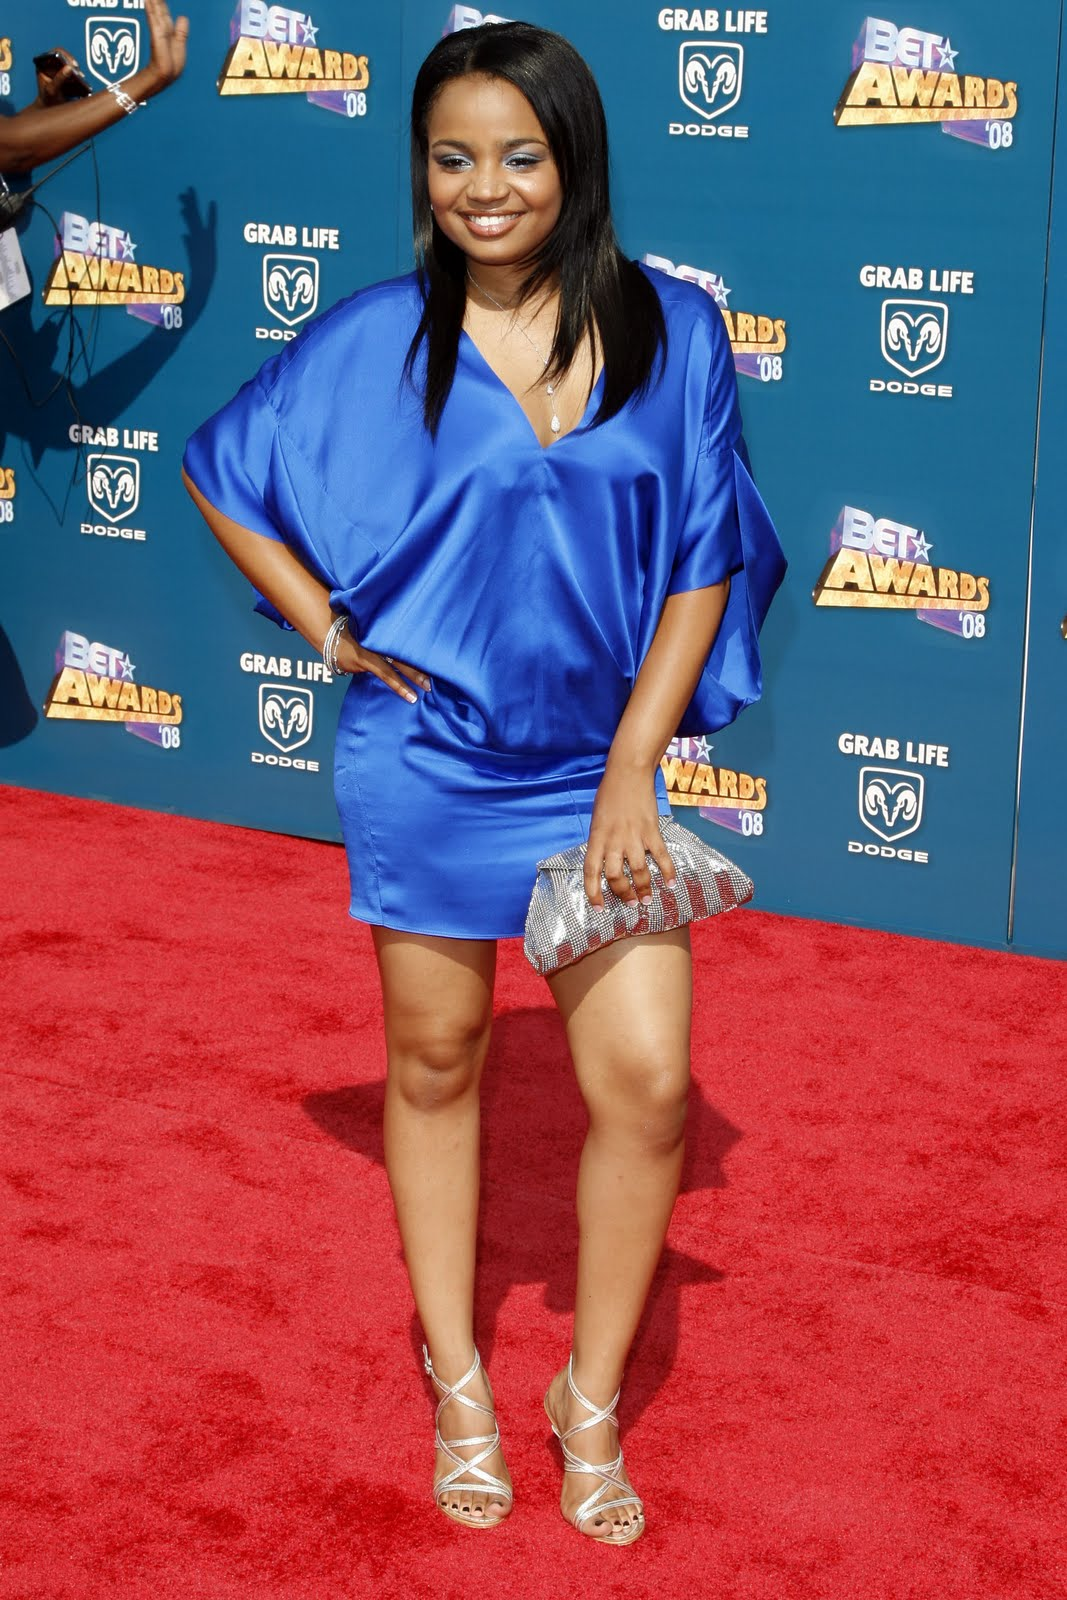 Kyla Pratt Legs Kyla Pratt Toes Kyla Pratt Barefoot And Shoes Kyla